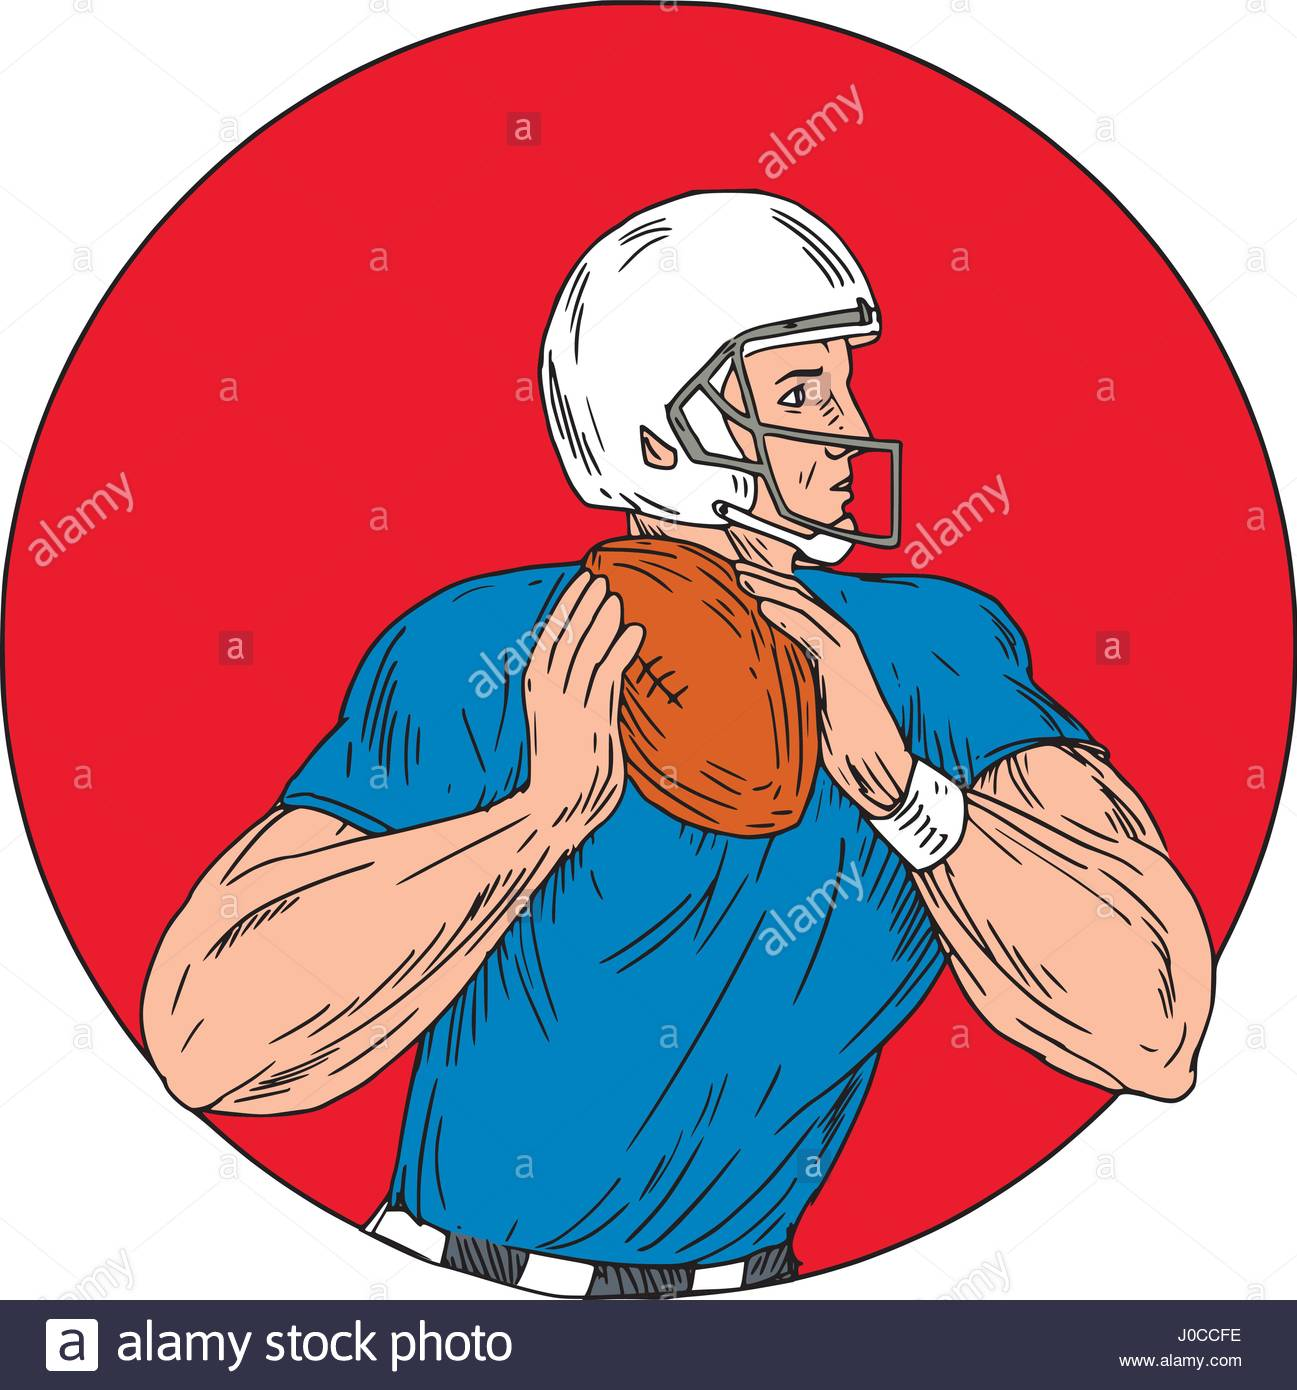 1297x1390 Drawing Sketch Style Illustration Of An American Football Gridiron